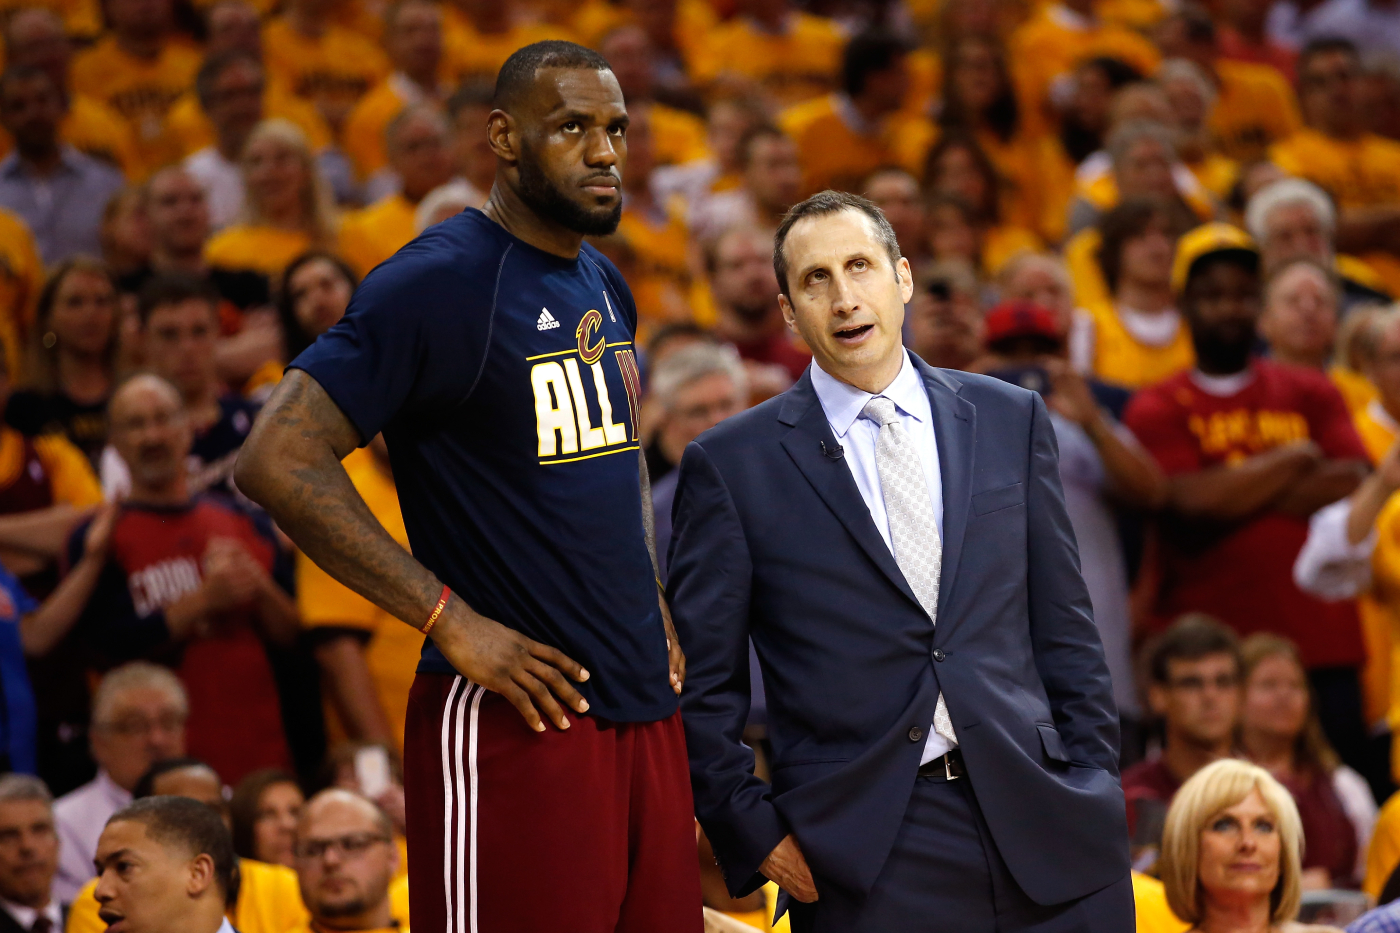 LeBron James has had many NBA coaches in his career. He once had an awkward encounter with former Cavaliers coach David Blatt, though.